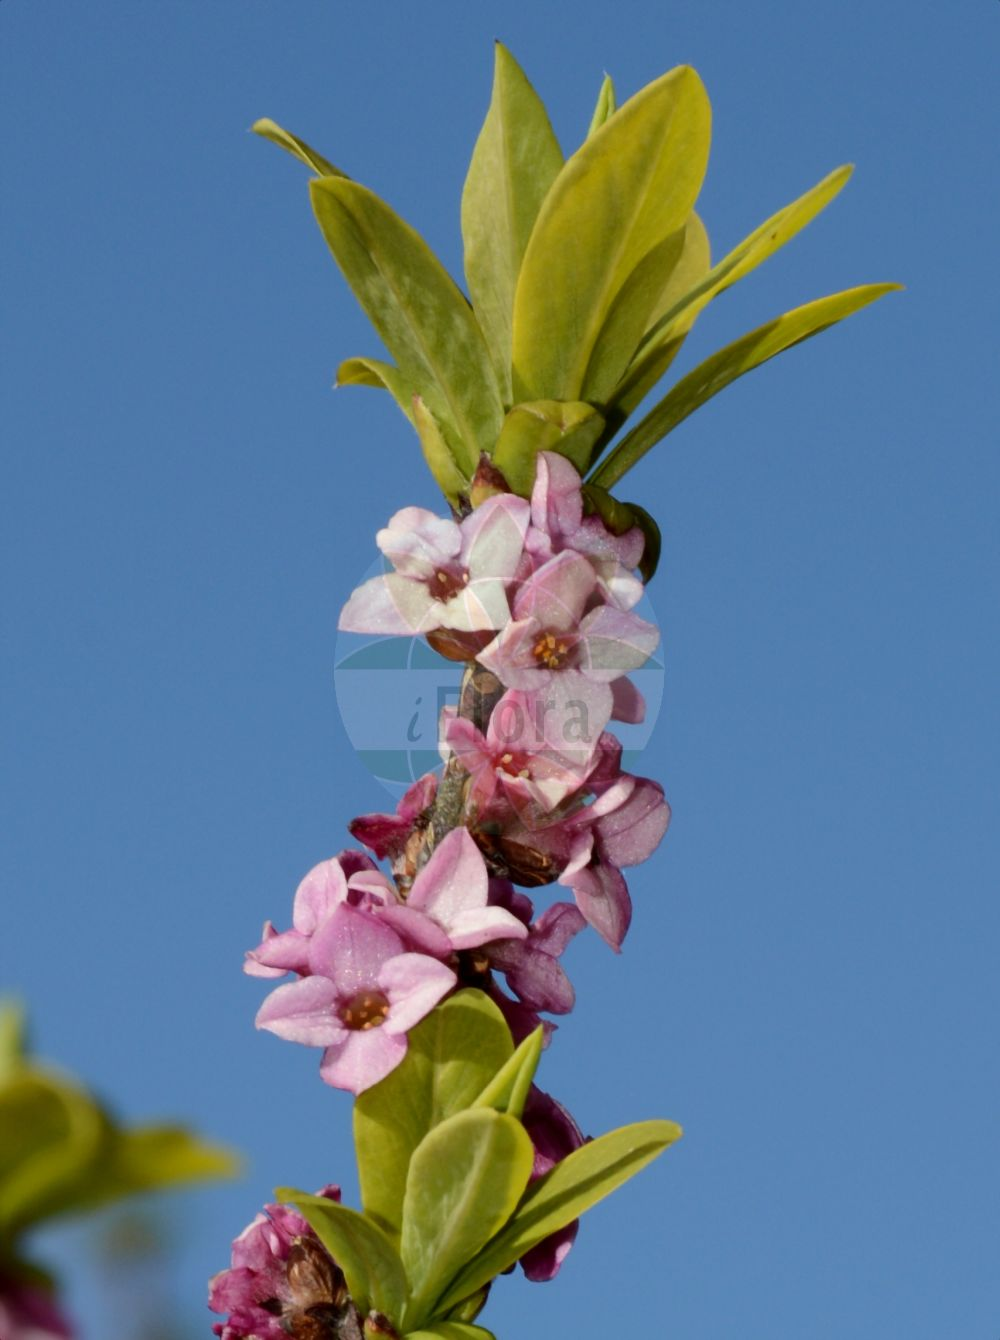 Foto von Daphne mezereum (Gewoehnlicher Seidelbast - Mezereon). Das Bild zeigt Blatt und Bluete. Das Foto wurde in aufgenommen. ---- Photo of Daphne mezereum (Gewoehnlicher Seidelbast - Mezereon).The image is showing leaf and flower.The picture was taken in . (Daphne mezereum,Gewoehnlicher Seidelbast,Mezereon,Bergpfeffer,Deutscher Pfeffer,Kellerhals,Purgierstrauch,Warzenbast,Zeiland,February Daphne,Paradise Plant,Daphne,Seidelbast,Daphne,Thymelaeaceae,Spatzenzungengewaechse;Seidelbastgewaechse,Daphne family,Blatt,Bluete,leaf,flower)